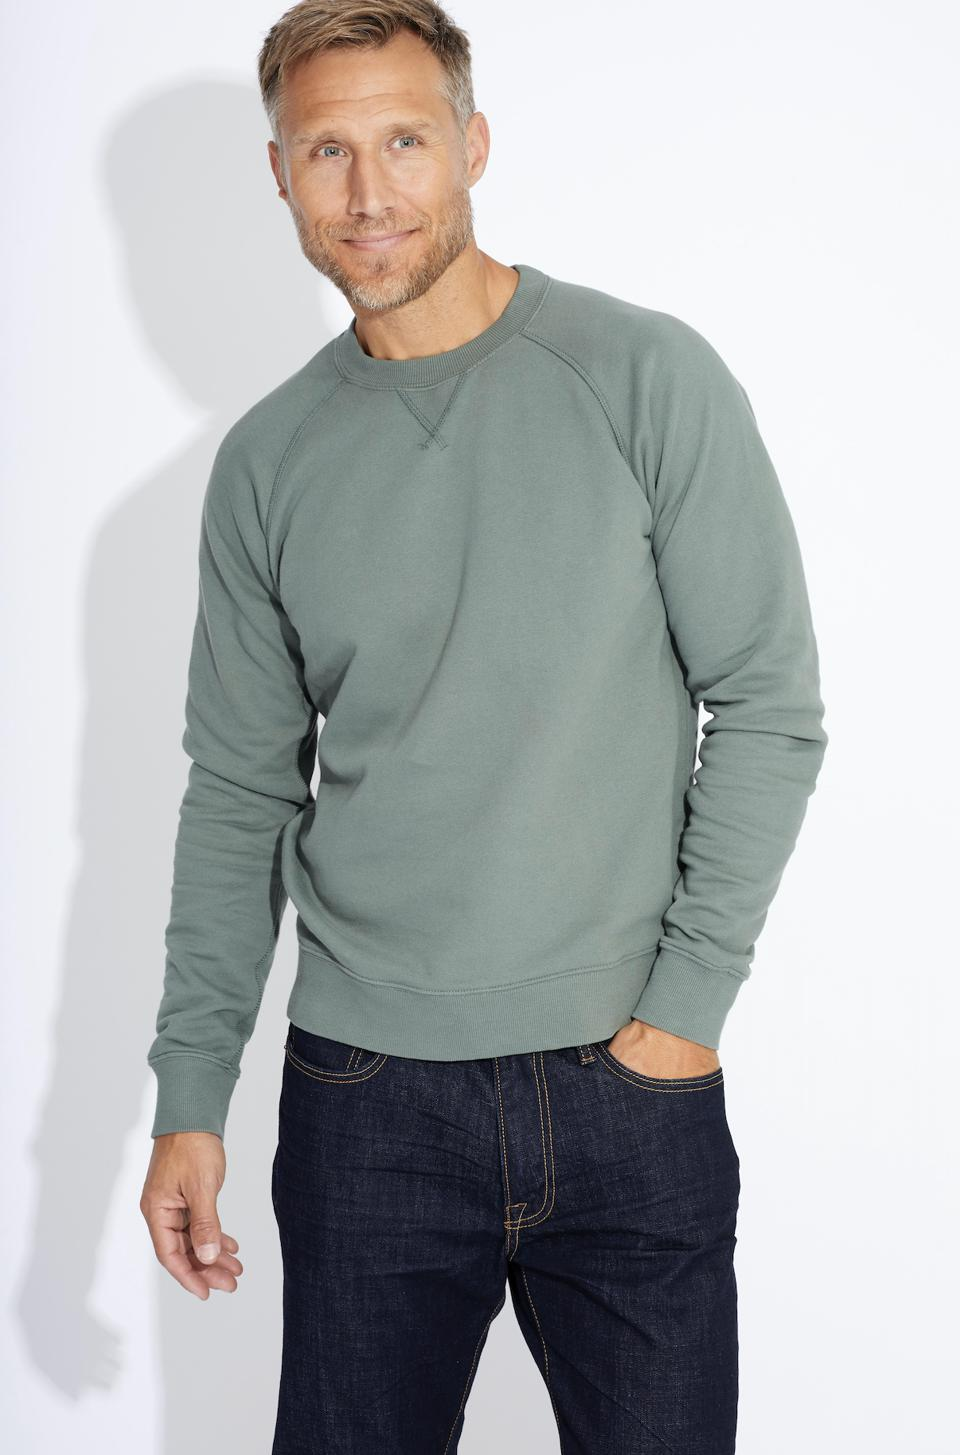 Pact's Essential Sweatshirt – Made with 100% Organic Cotton and Fair Trade Certified™